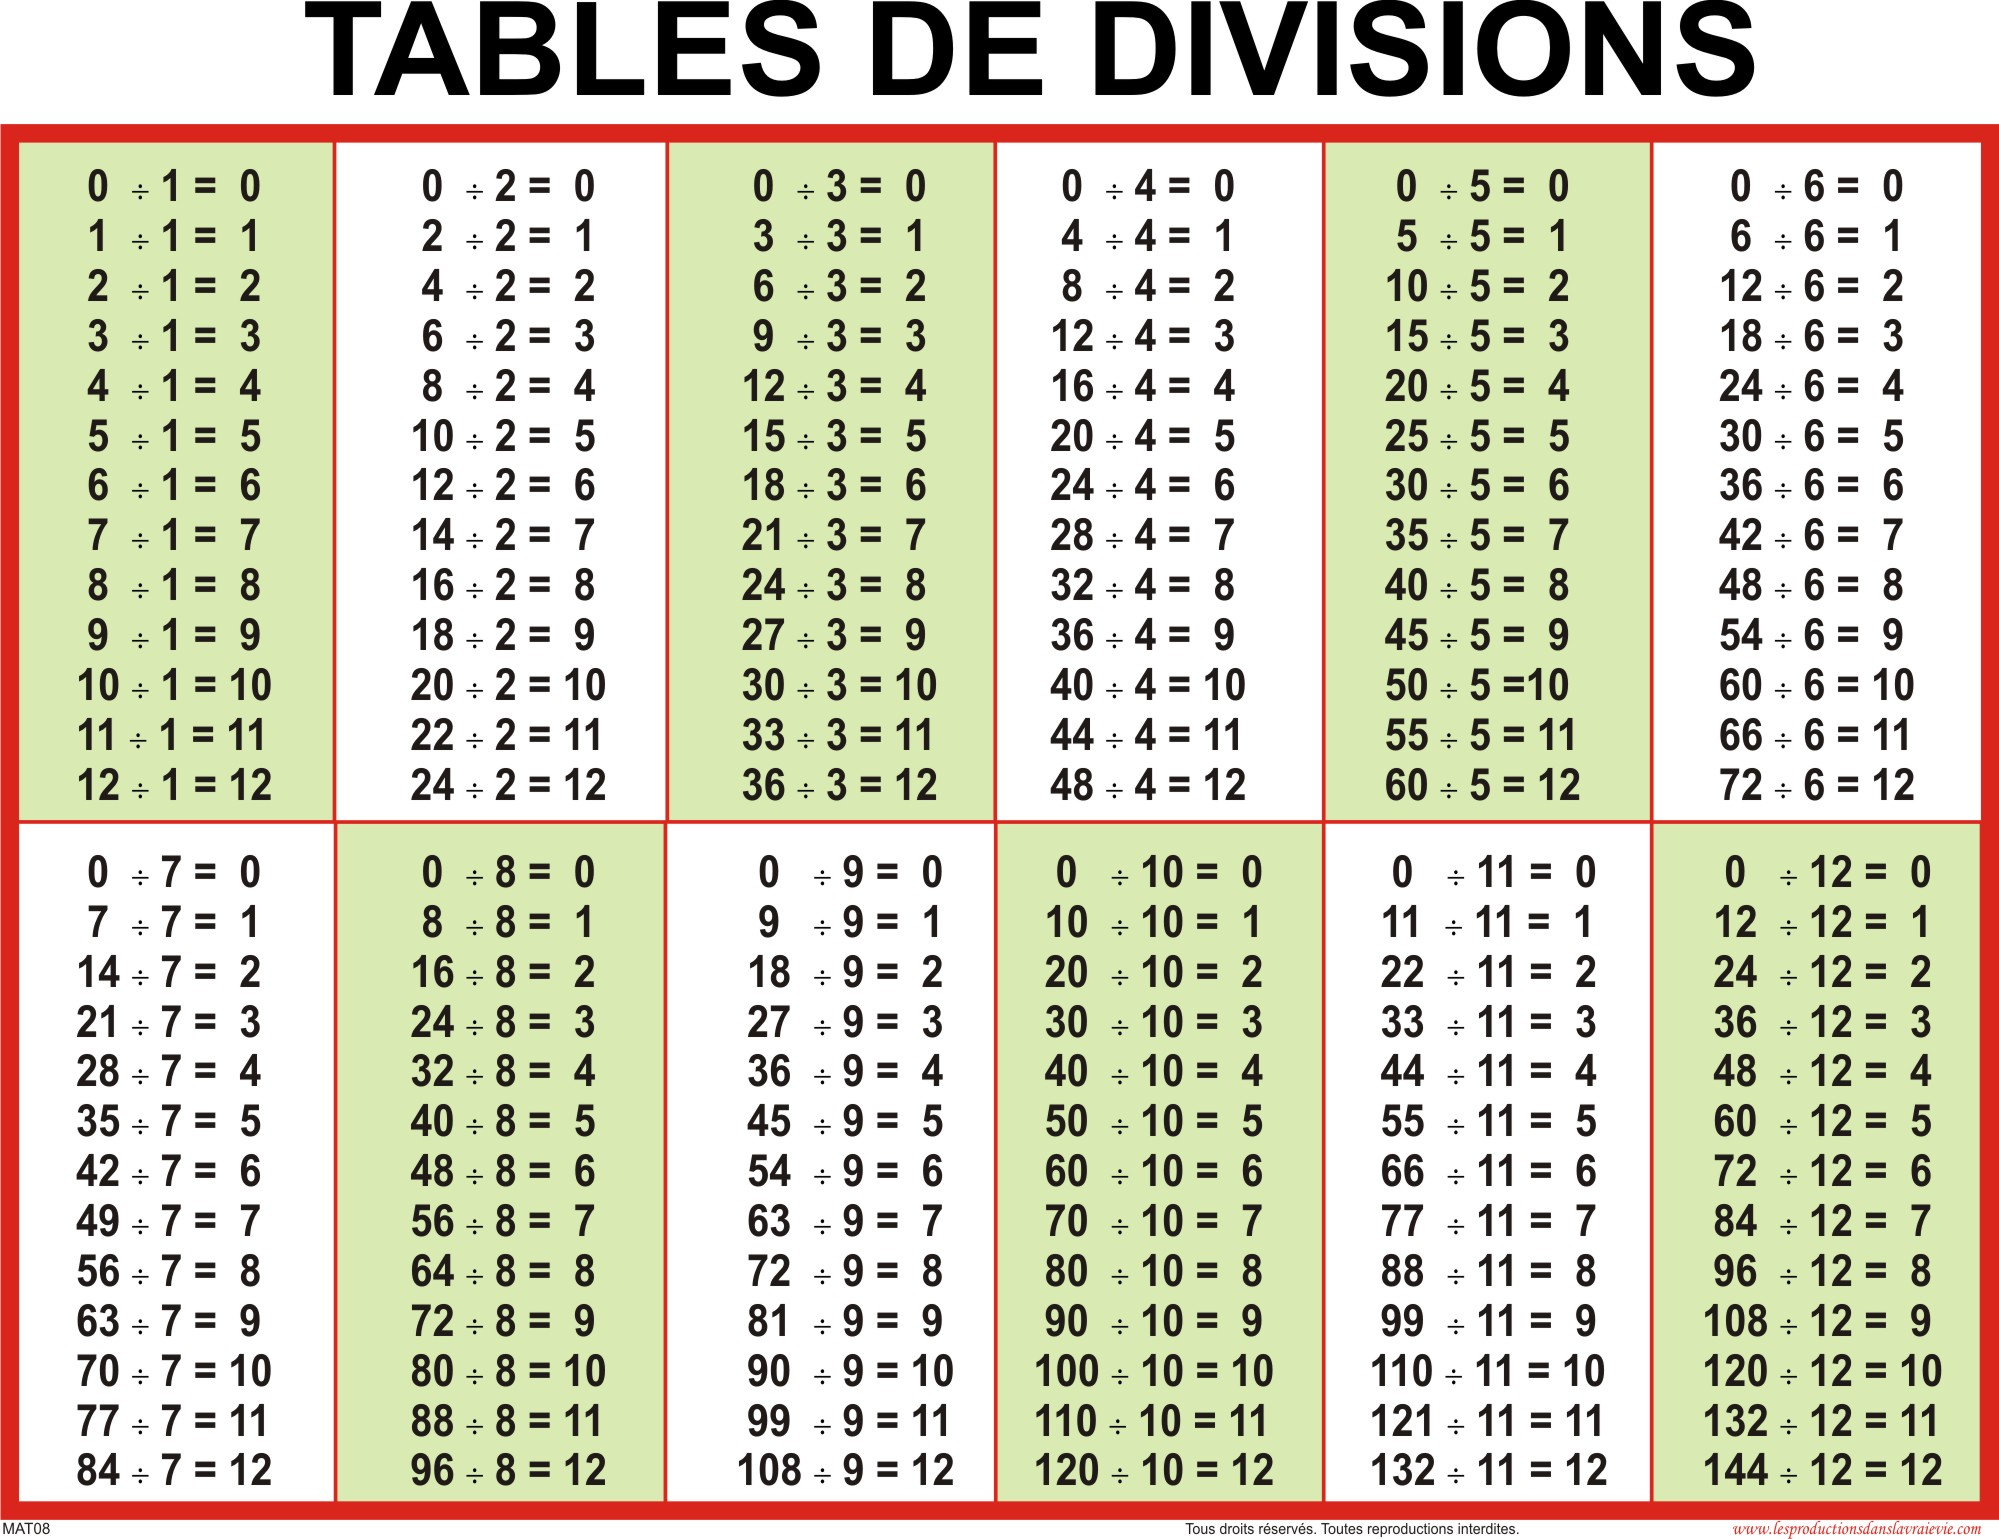 Divide Chart 1 12 - Vatan.vtngcf with regard to Printable Multiplication Table 1-15